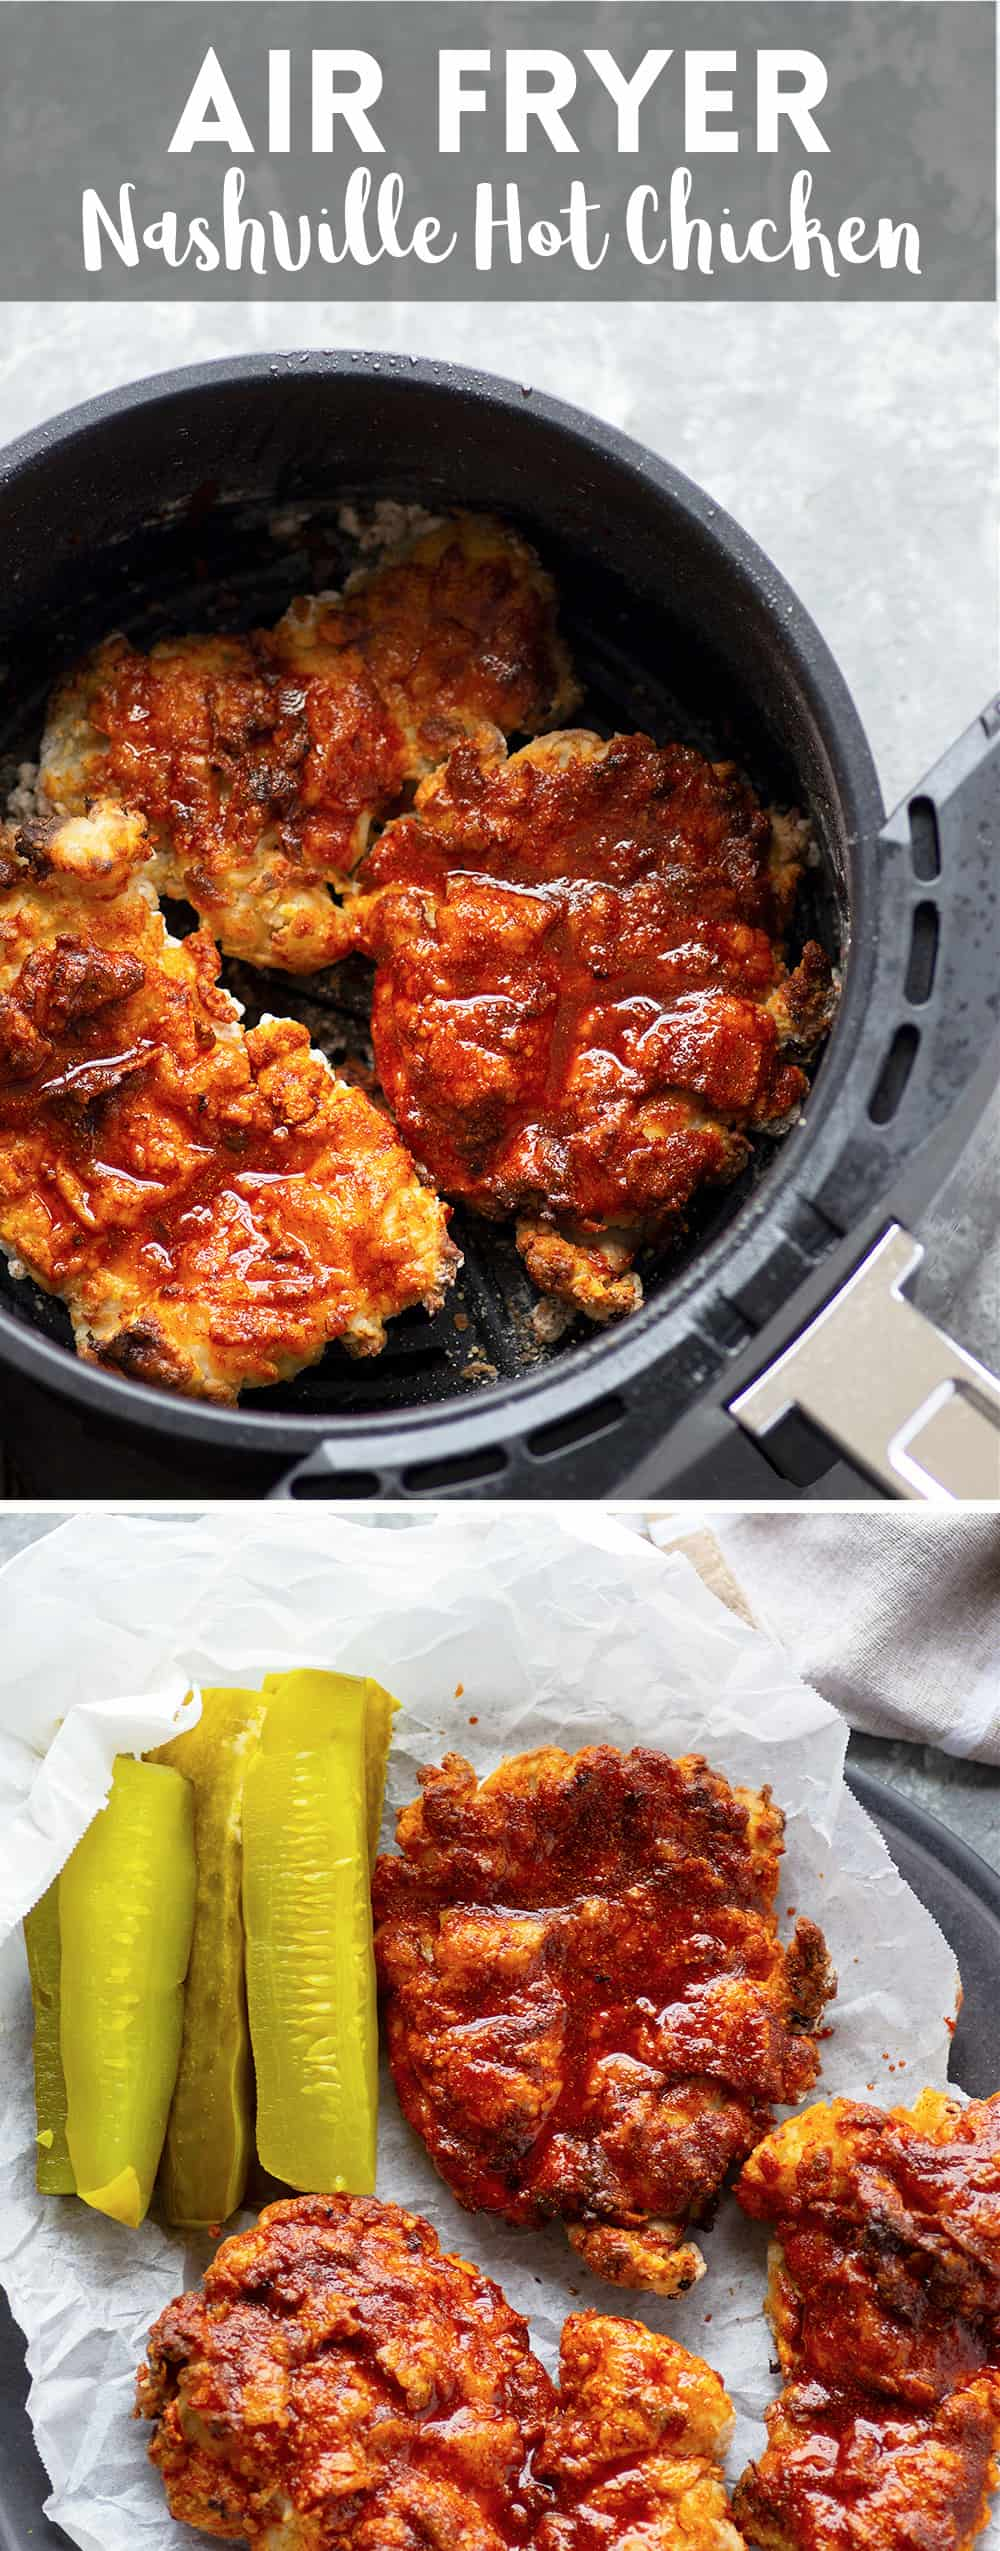 Air fryer Nashville hot chicken is a healthier version of the classic spicy fried chicken! Crispy buttermilk-soaked chicken thighs are fried until perfectly crispy and brushed in a spicy cayenne sauce.